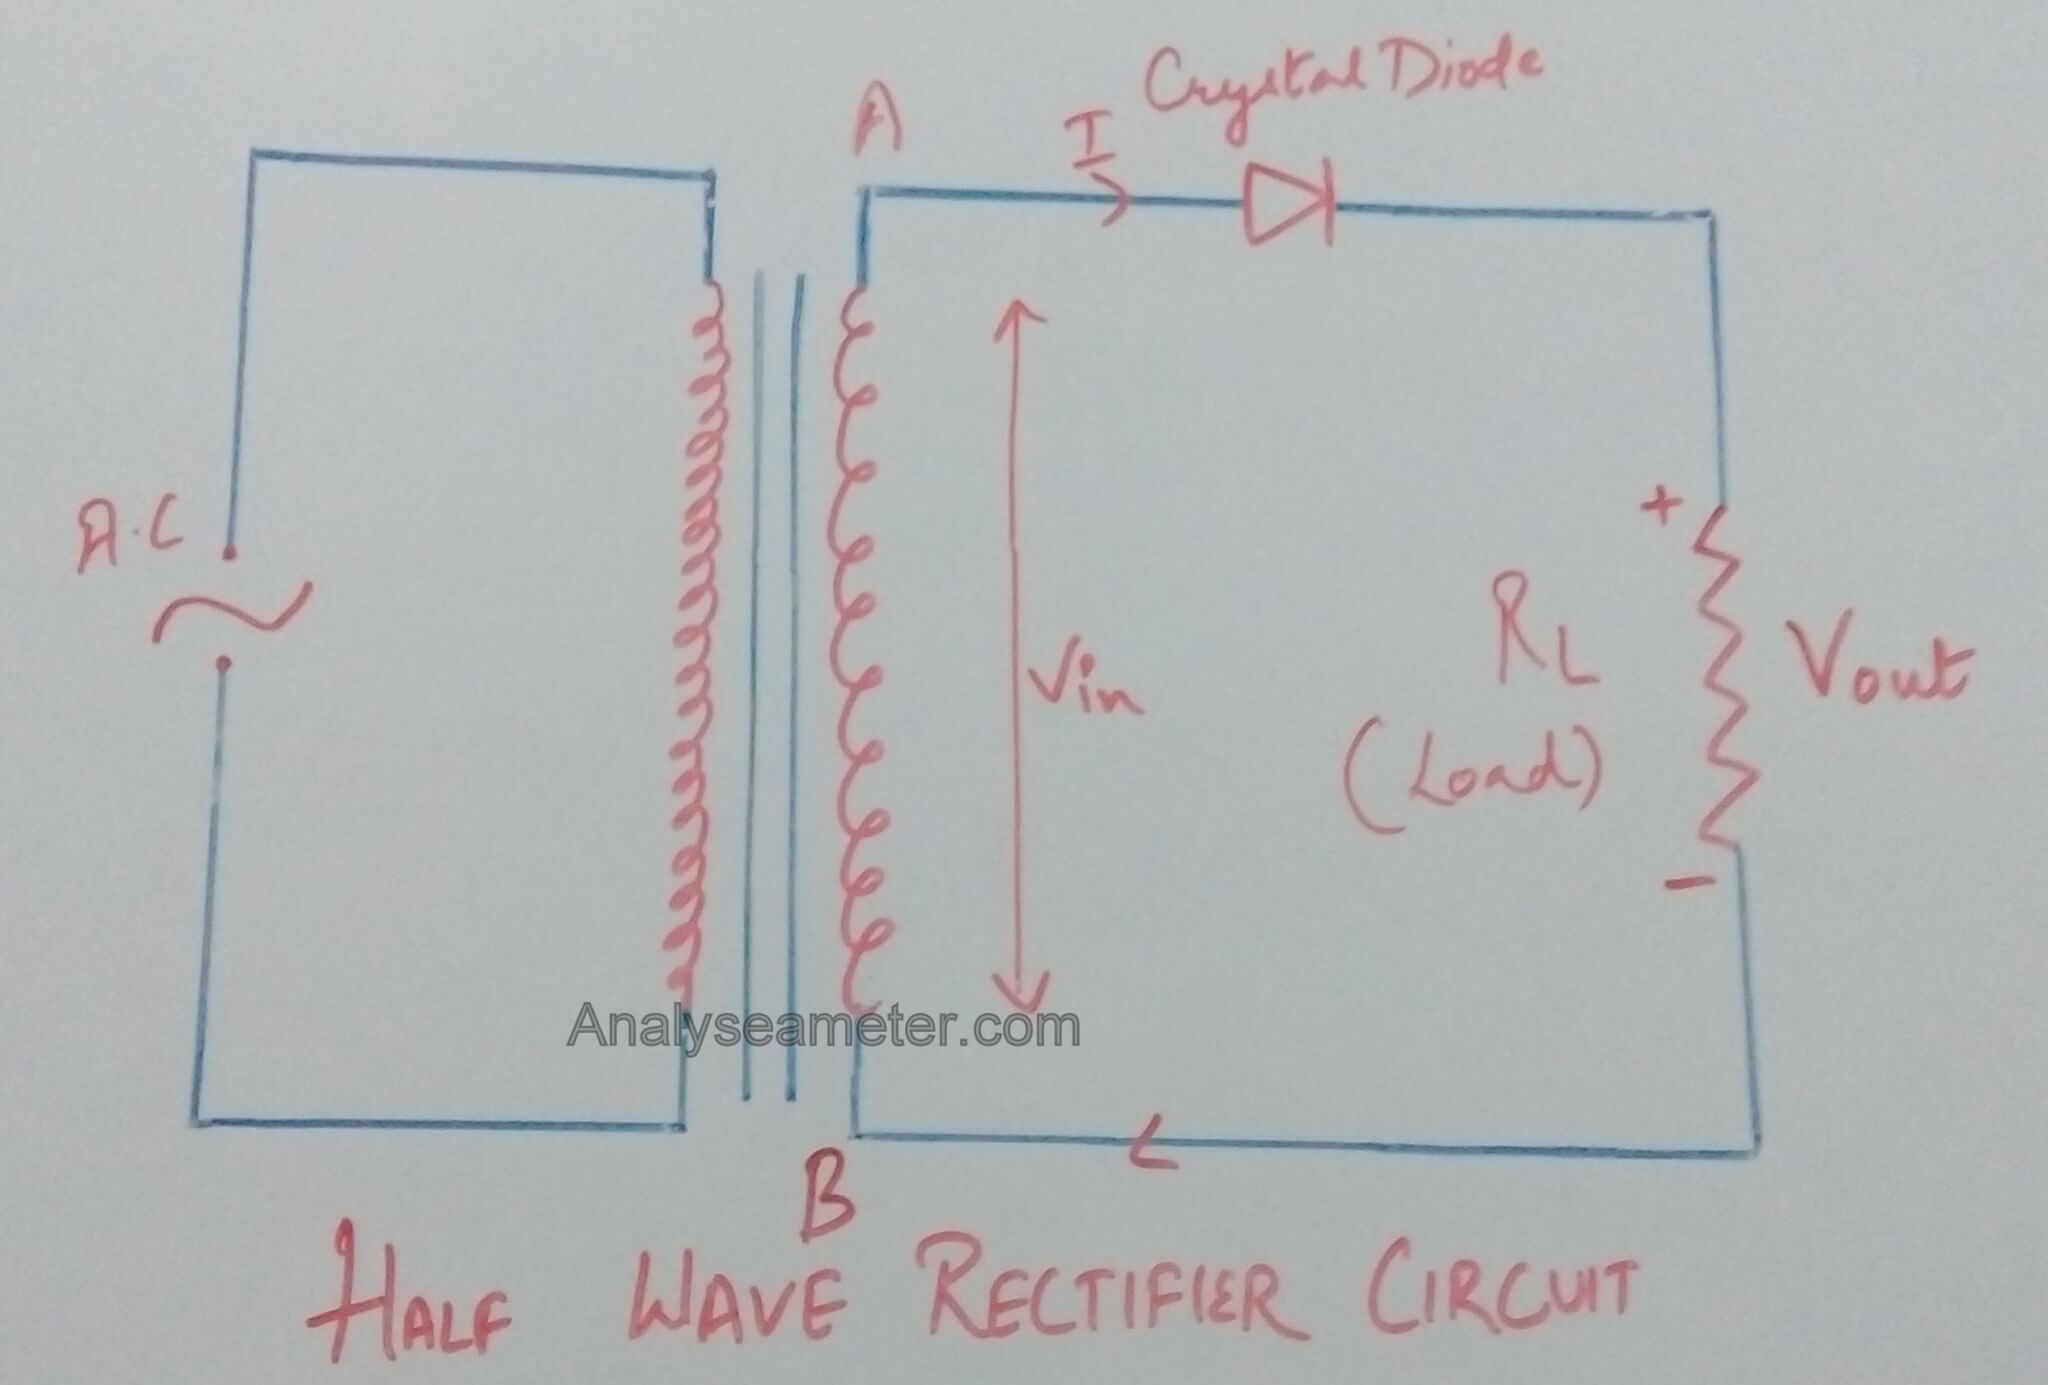 Half Wave Rectifier Circuit Working Analyse A Meter Full With Averaging Filter Pictures Image